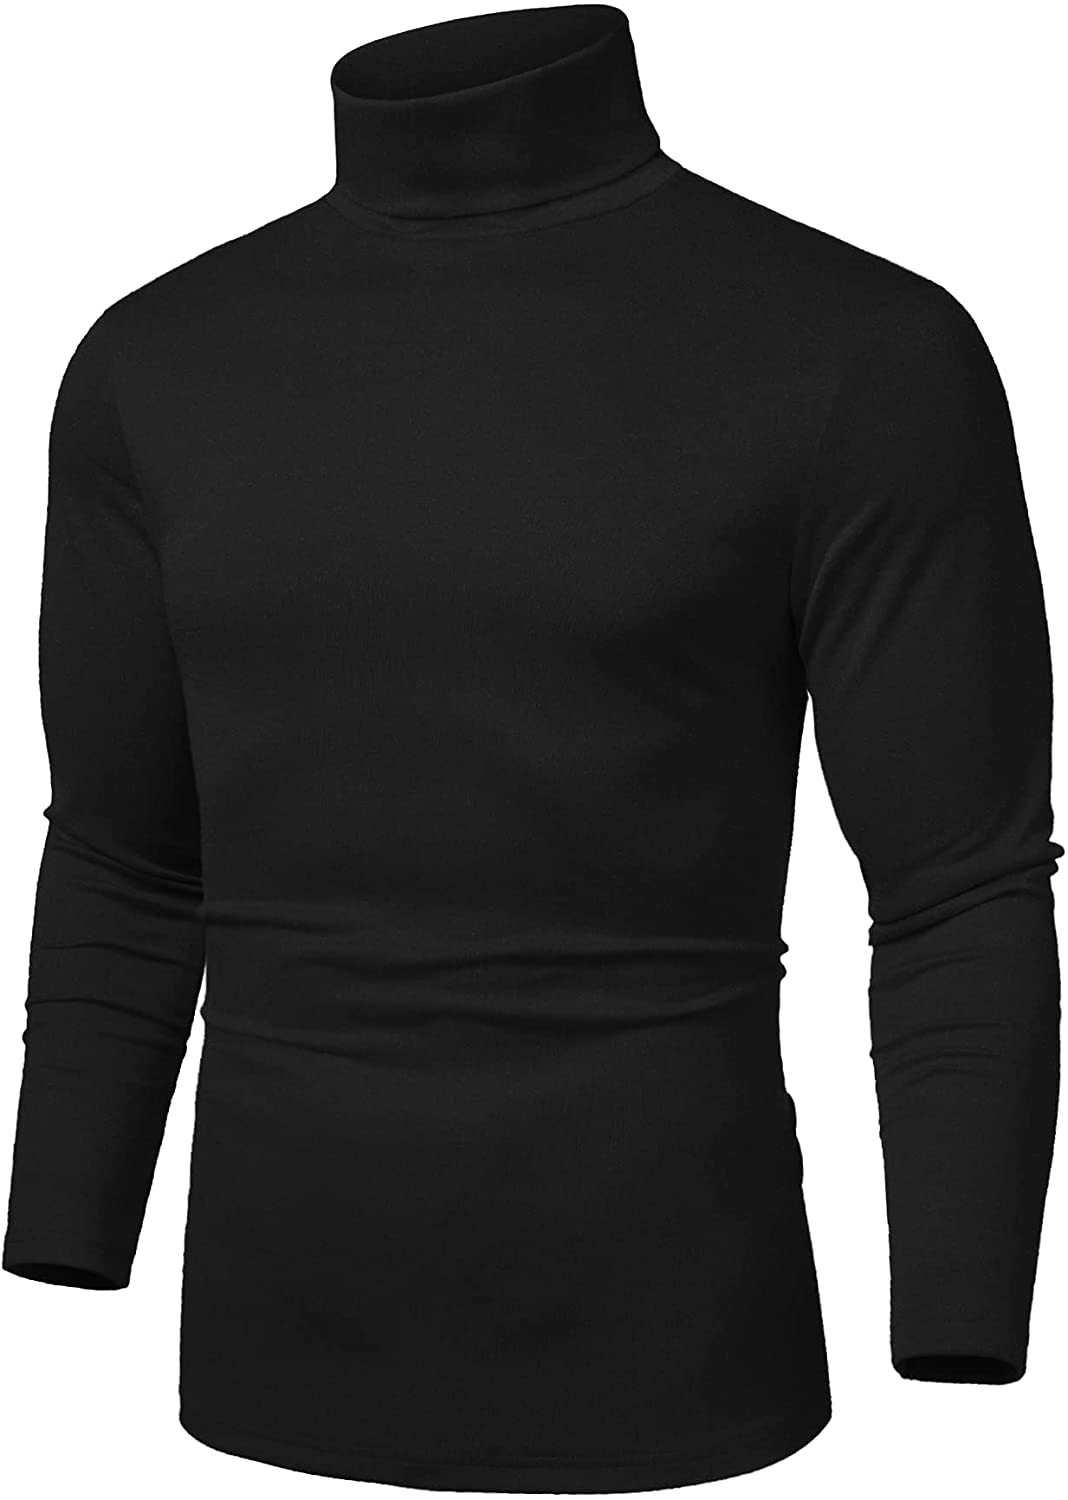 COOFANDY Men's Free Shipping Cheap Bargain Gift Slim Fit At the price of surprise Basic T Thermal Shirts Turtleneck Casual